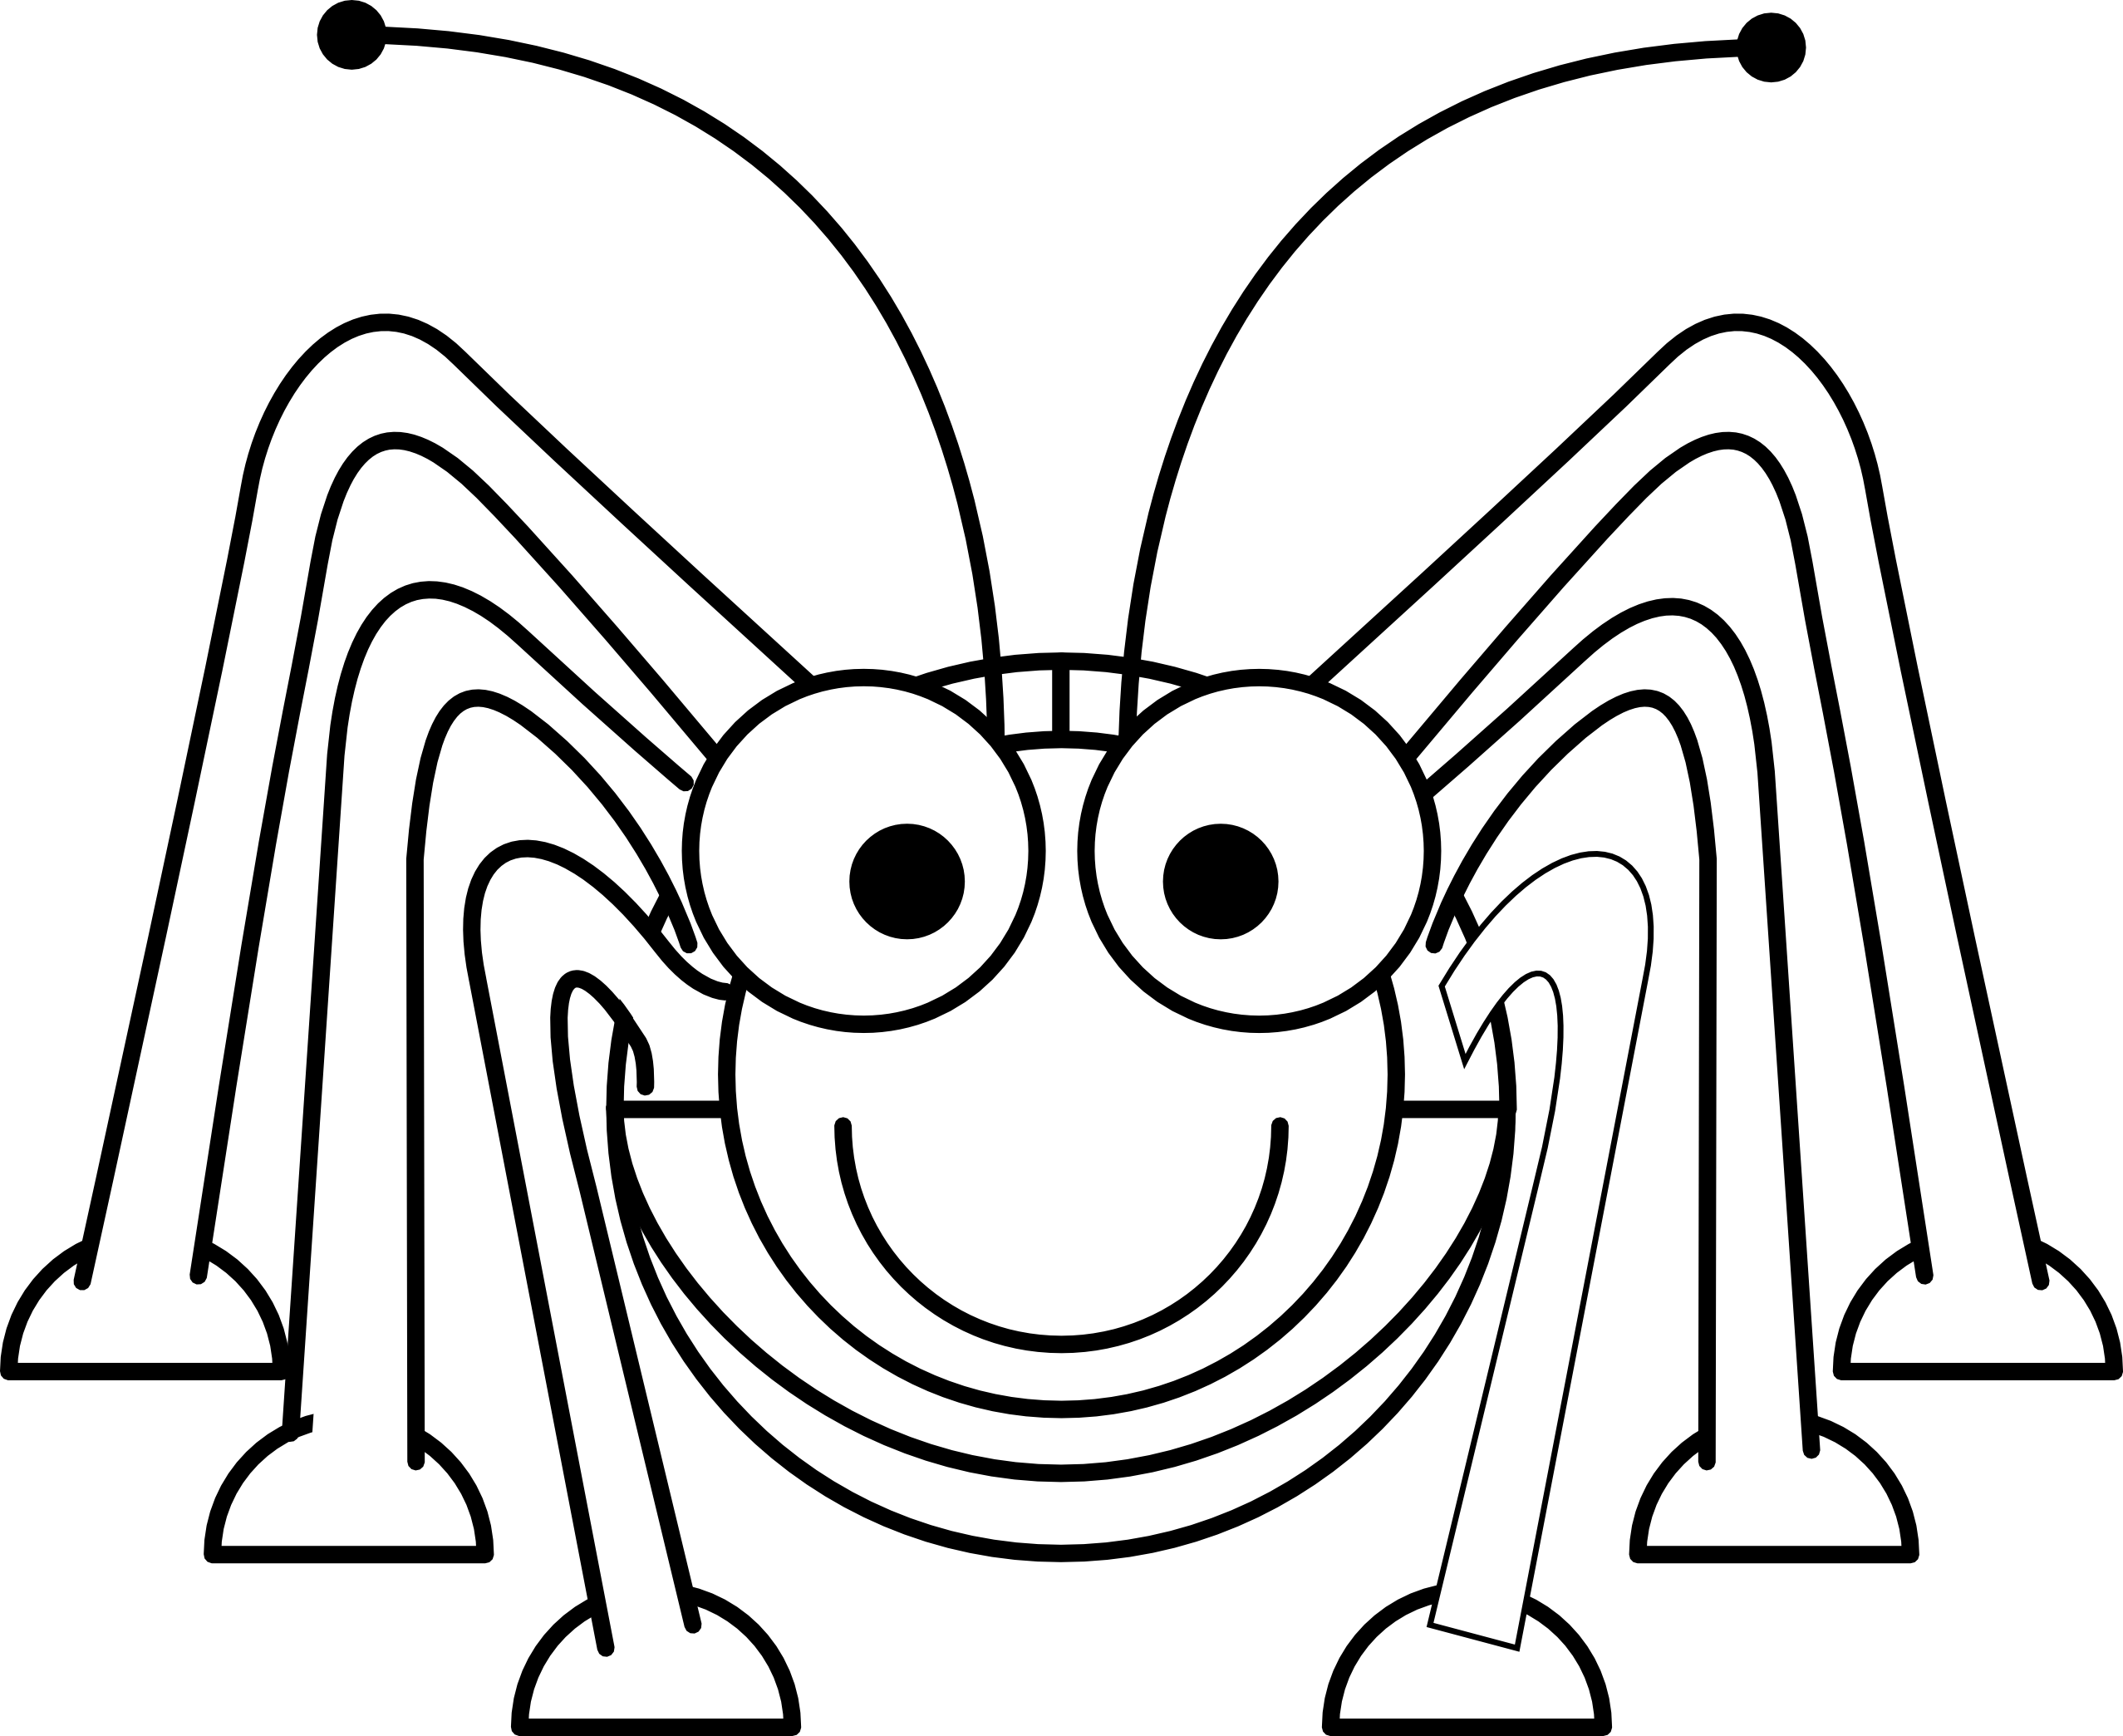 Grasshopper black and white. Worm clipart minibeast